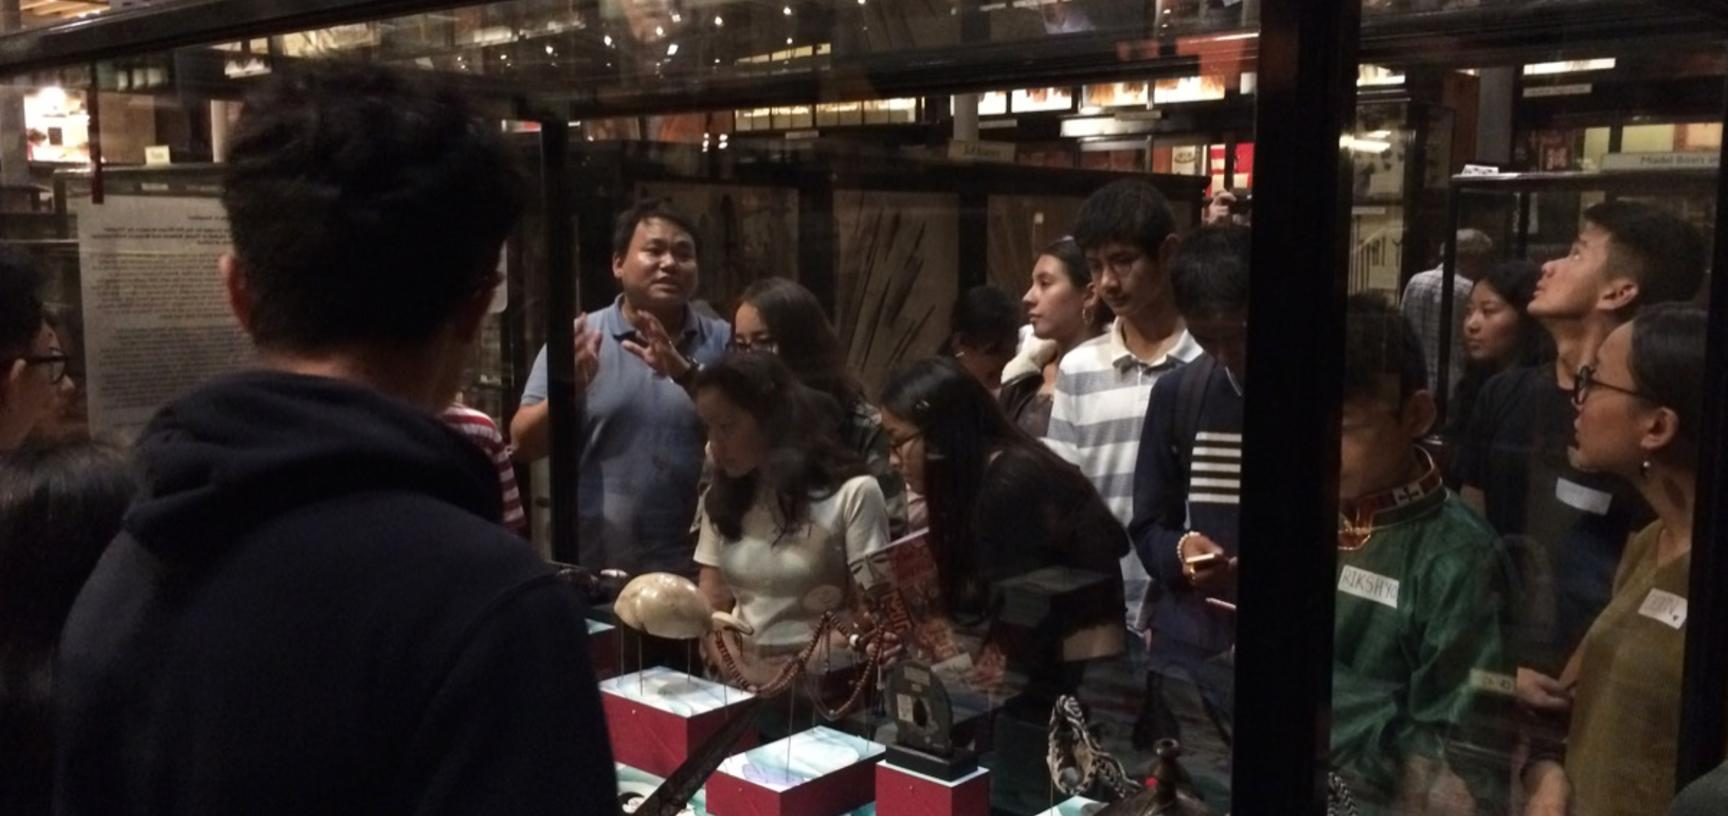 Thupten Kelsang discussing the display with teenage members of the UK's Tibetan community during a public engagement event, 'My Tibet Museum', held at the Pitt Rivers Museum in October 2018.